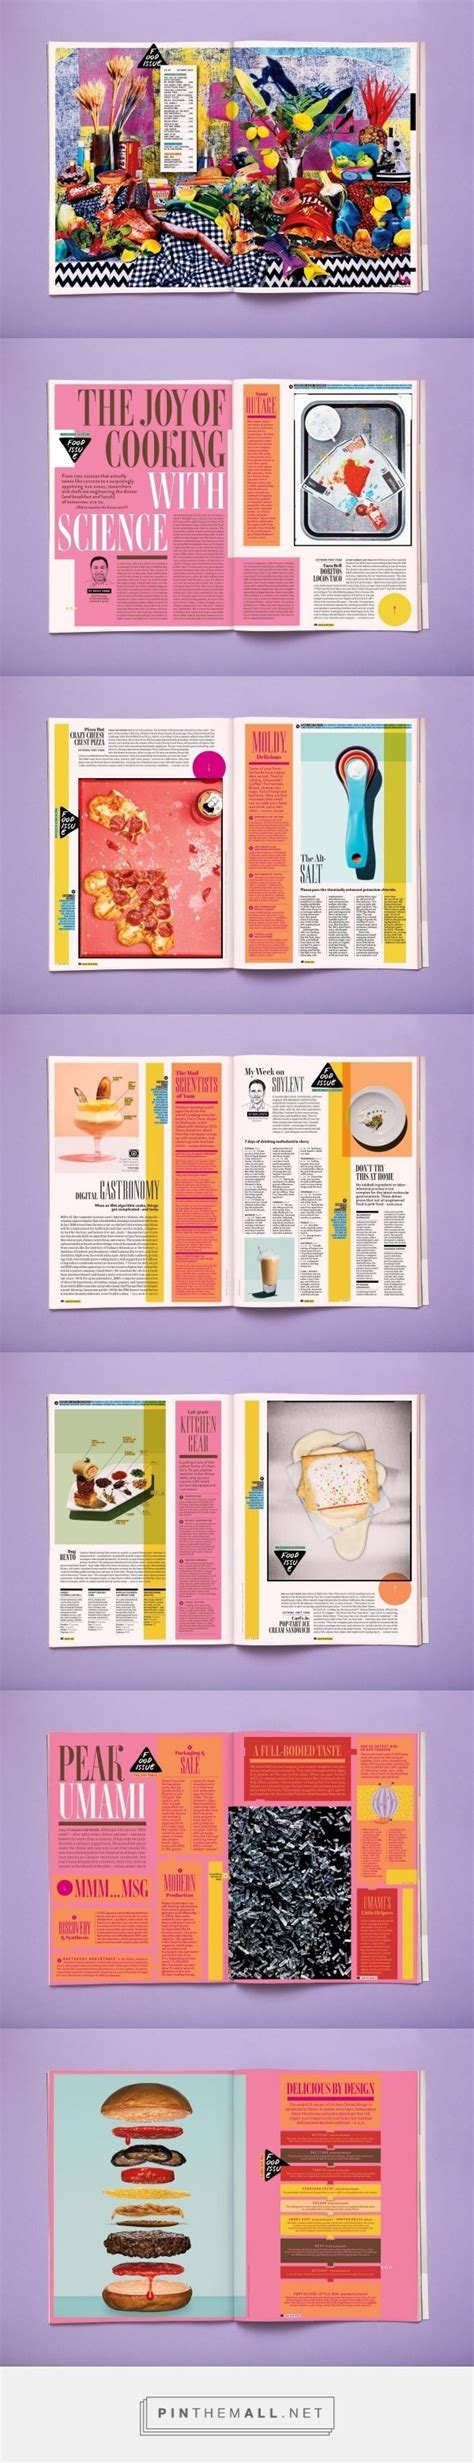 magazine layout squarespace 619 best design images on pinterest